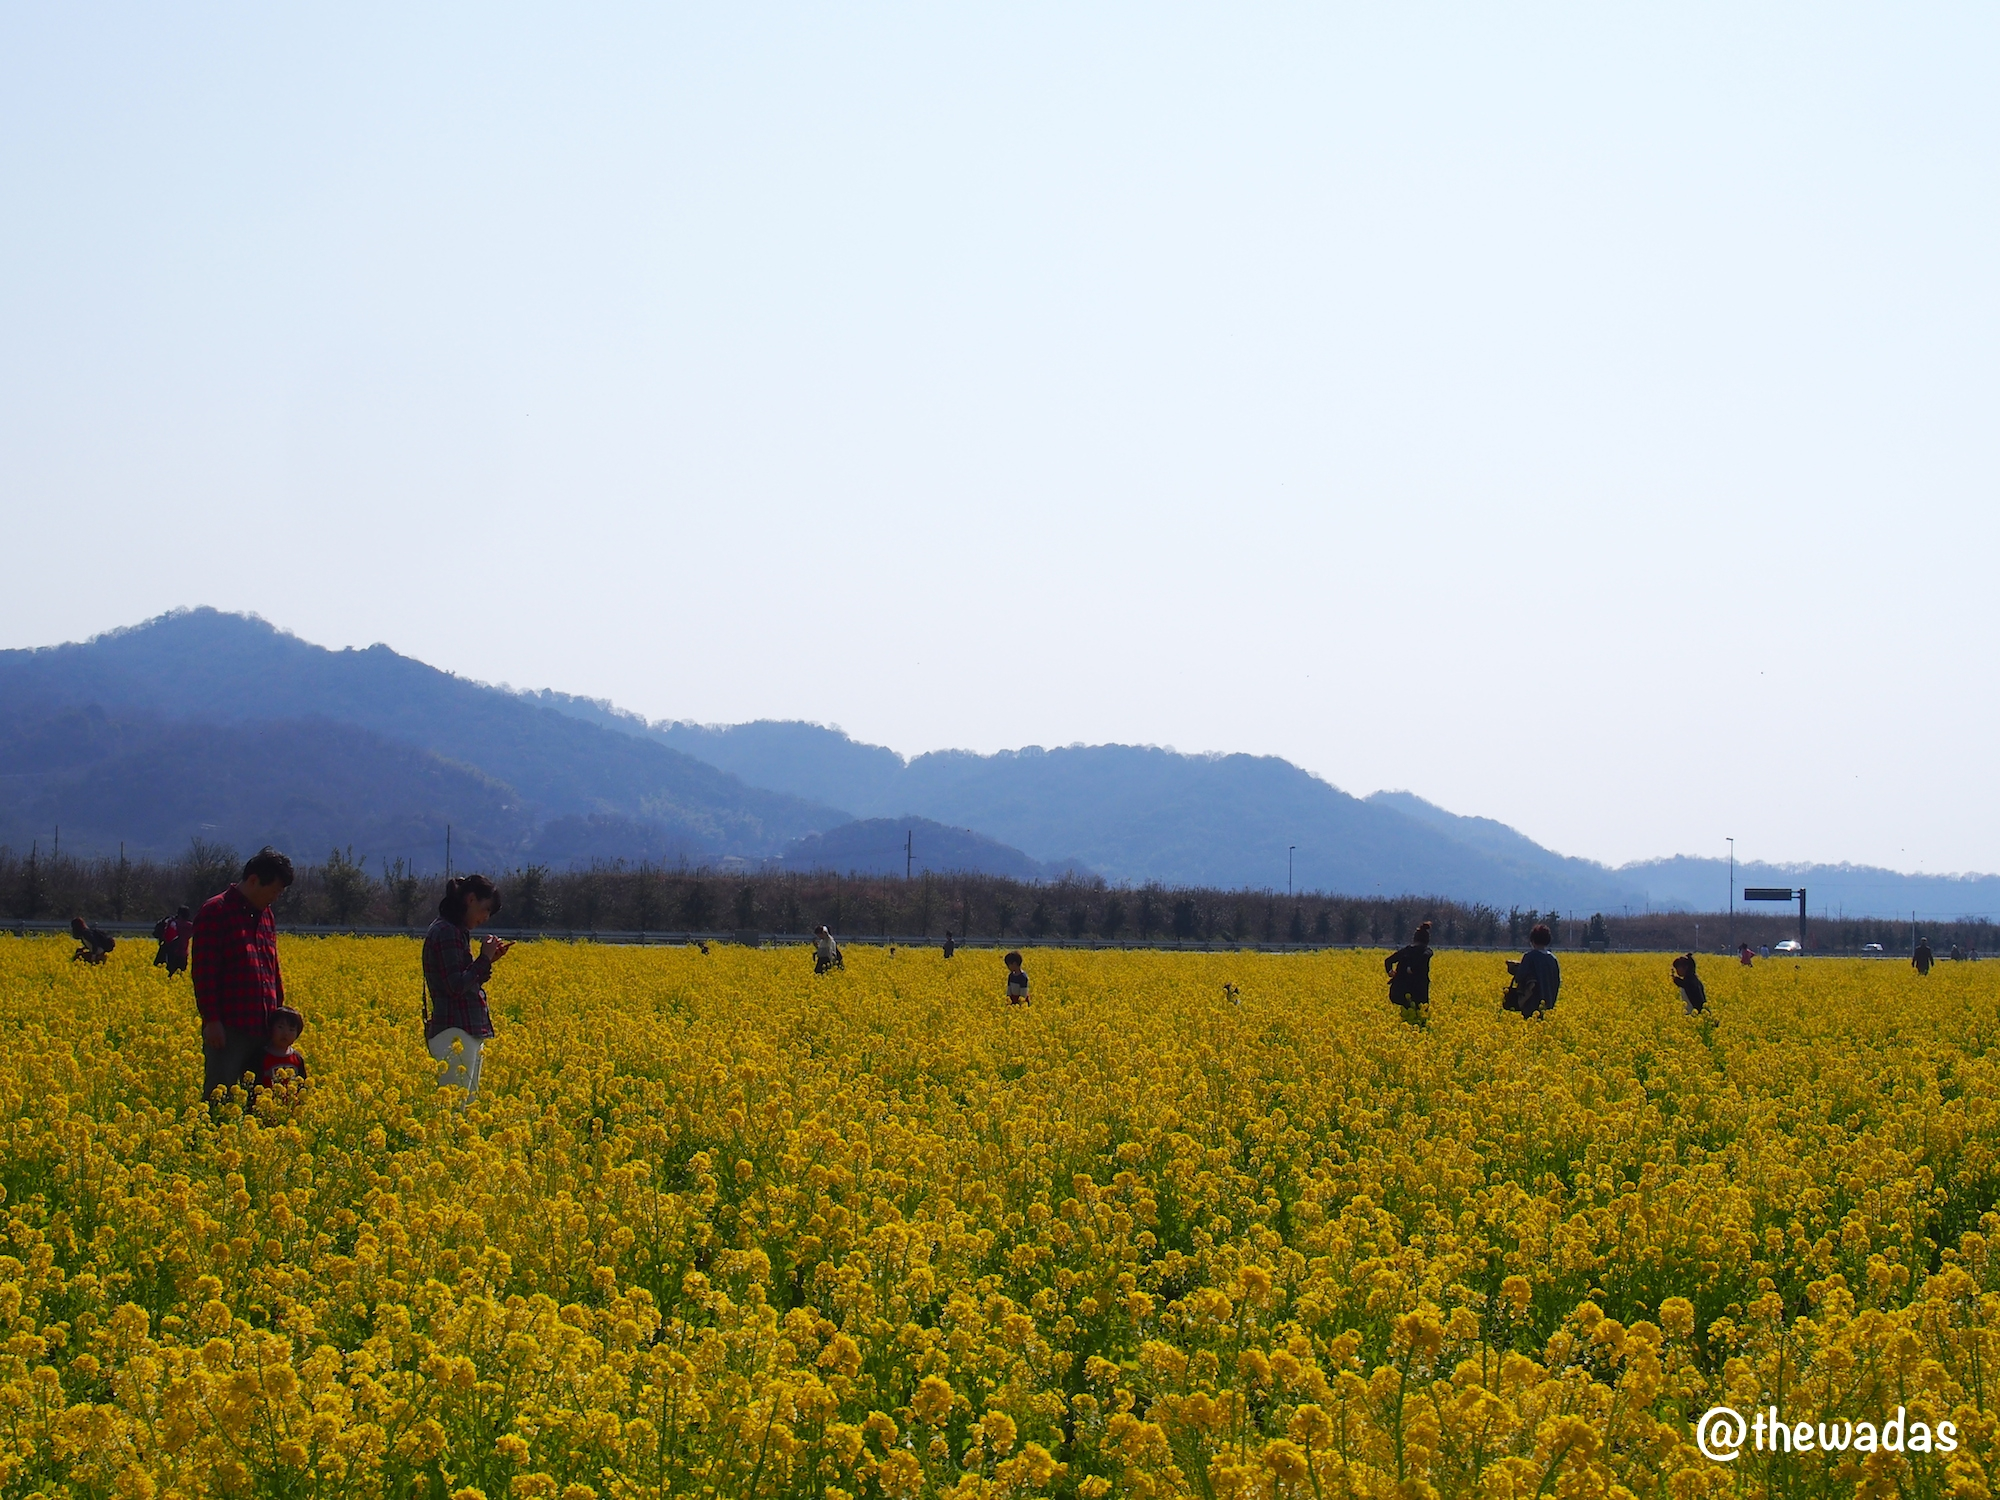 Kasaoka Bayfarm: Nanohana rapeseed flower field and mountain